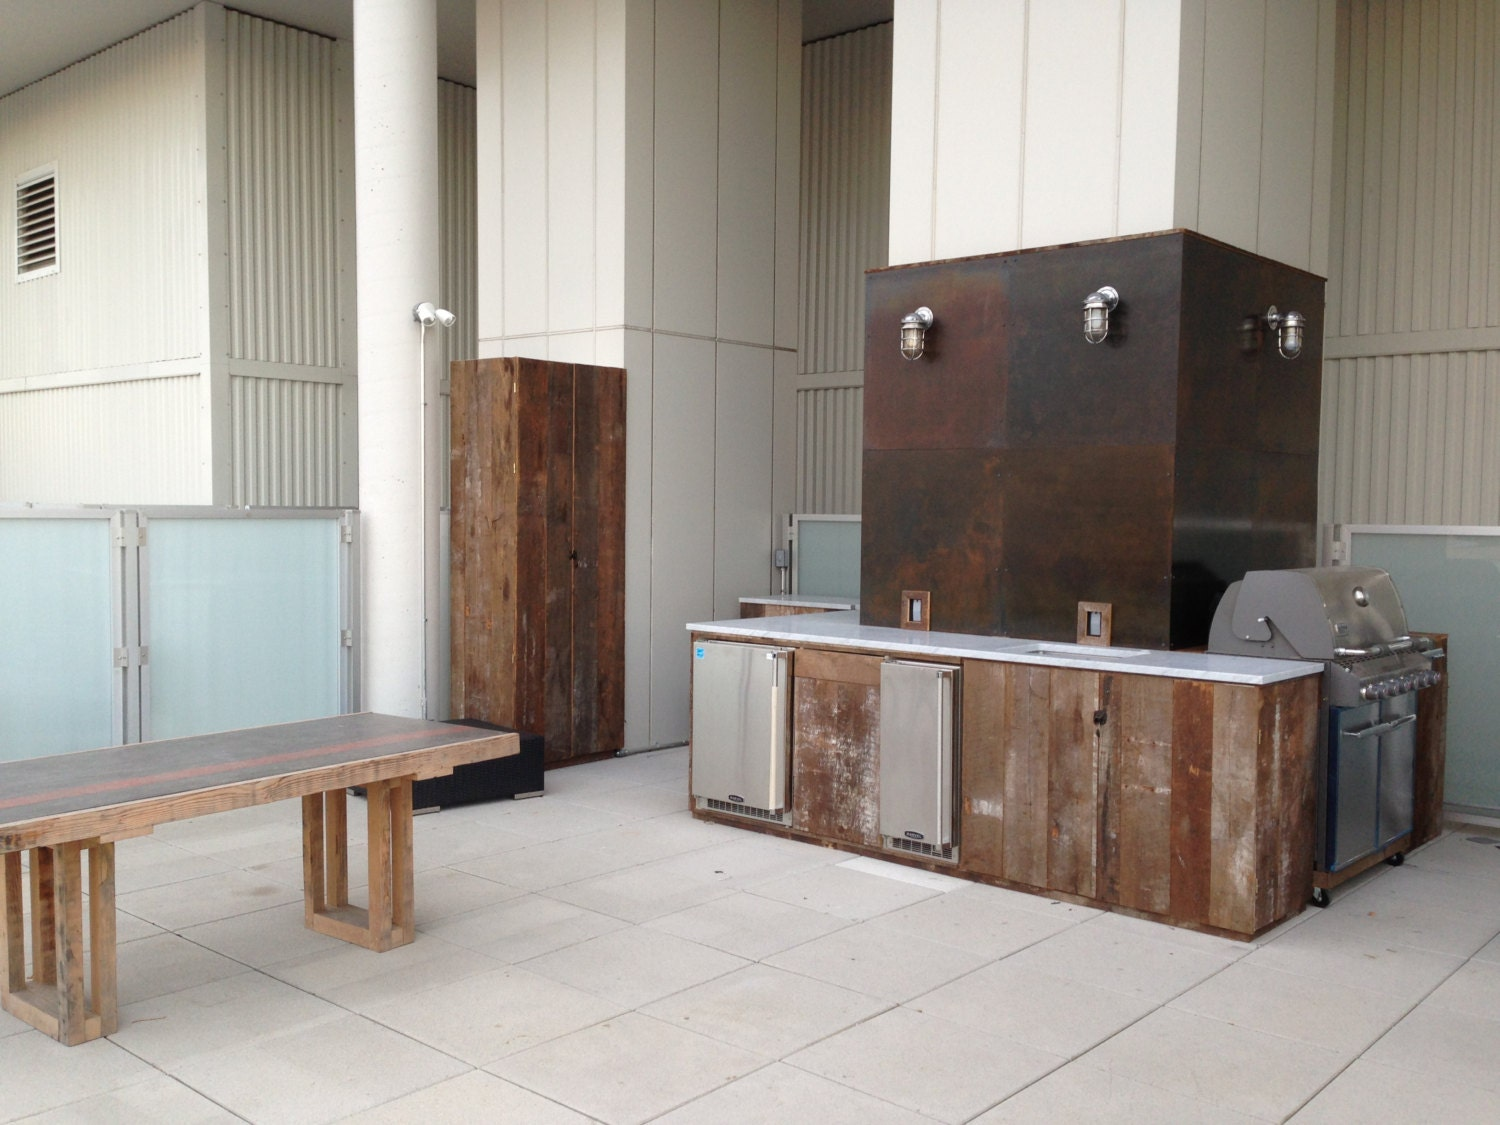 Reclaimed Wood Kitchen Cabinets Custom Outdoor Kitchen With Reclaimed Wood Cabinets Carrara